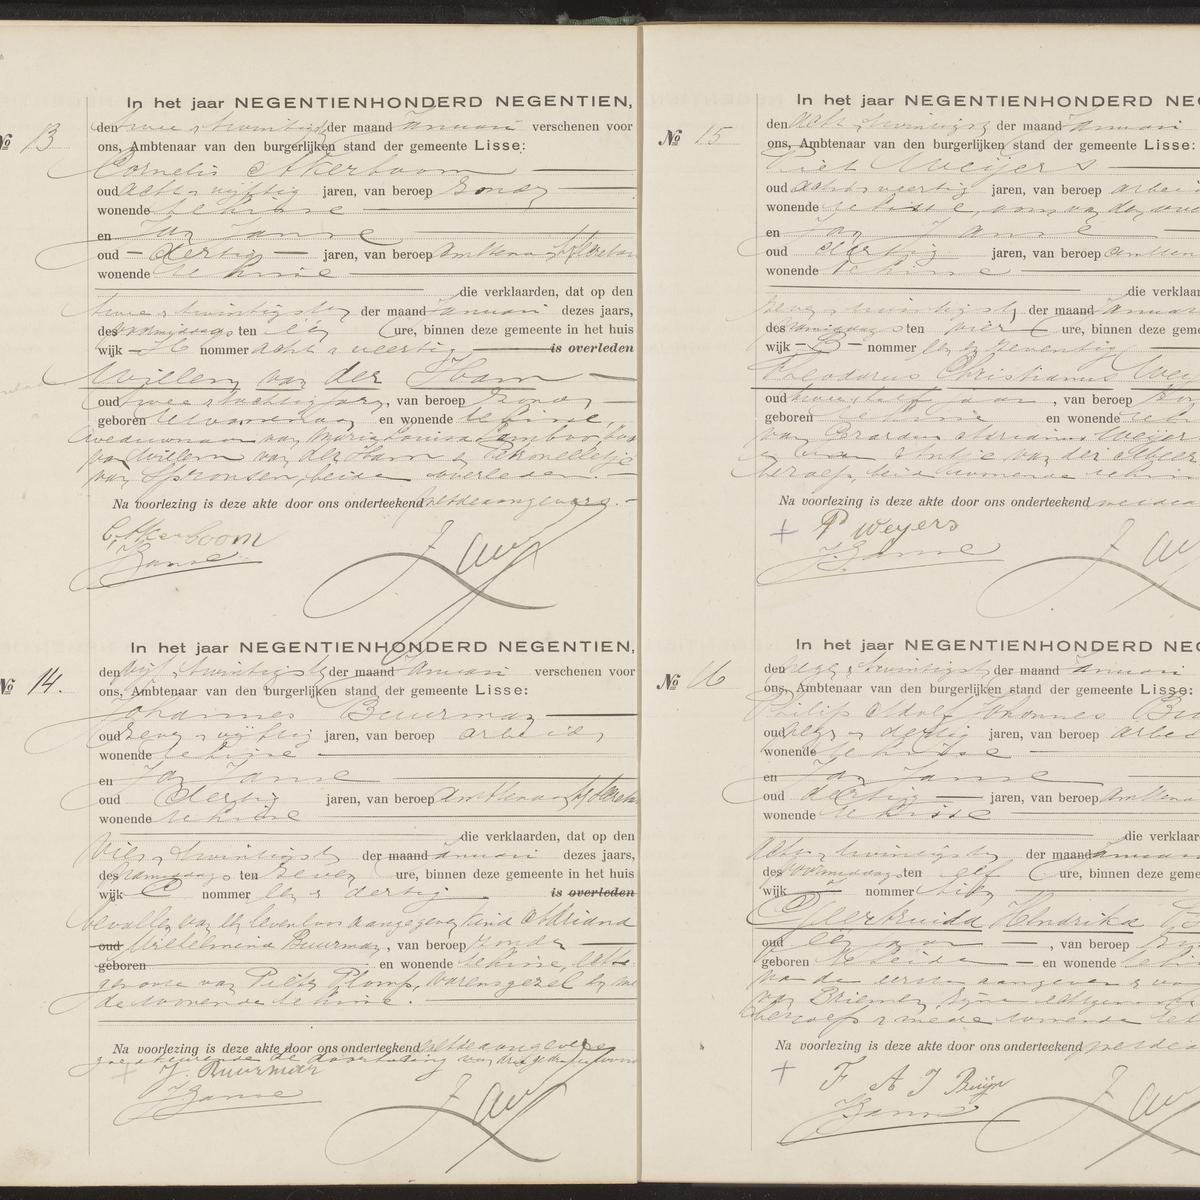 Civil registry of deaths, Lisse, 1919, records 13-16